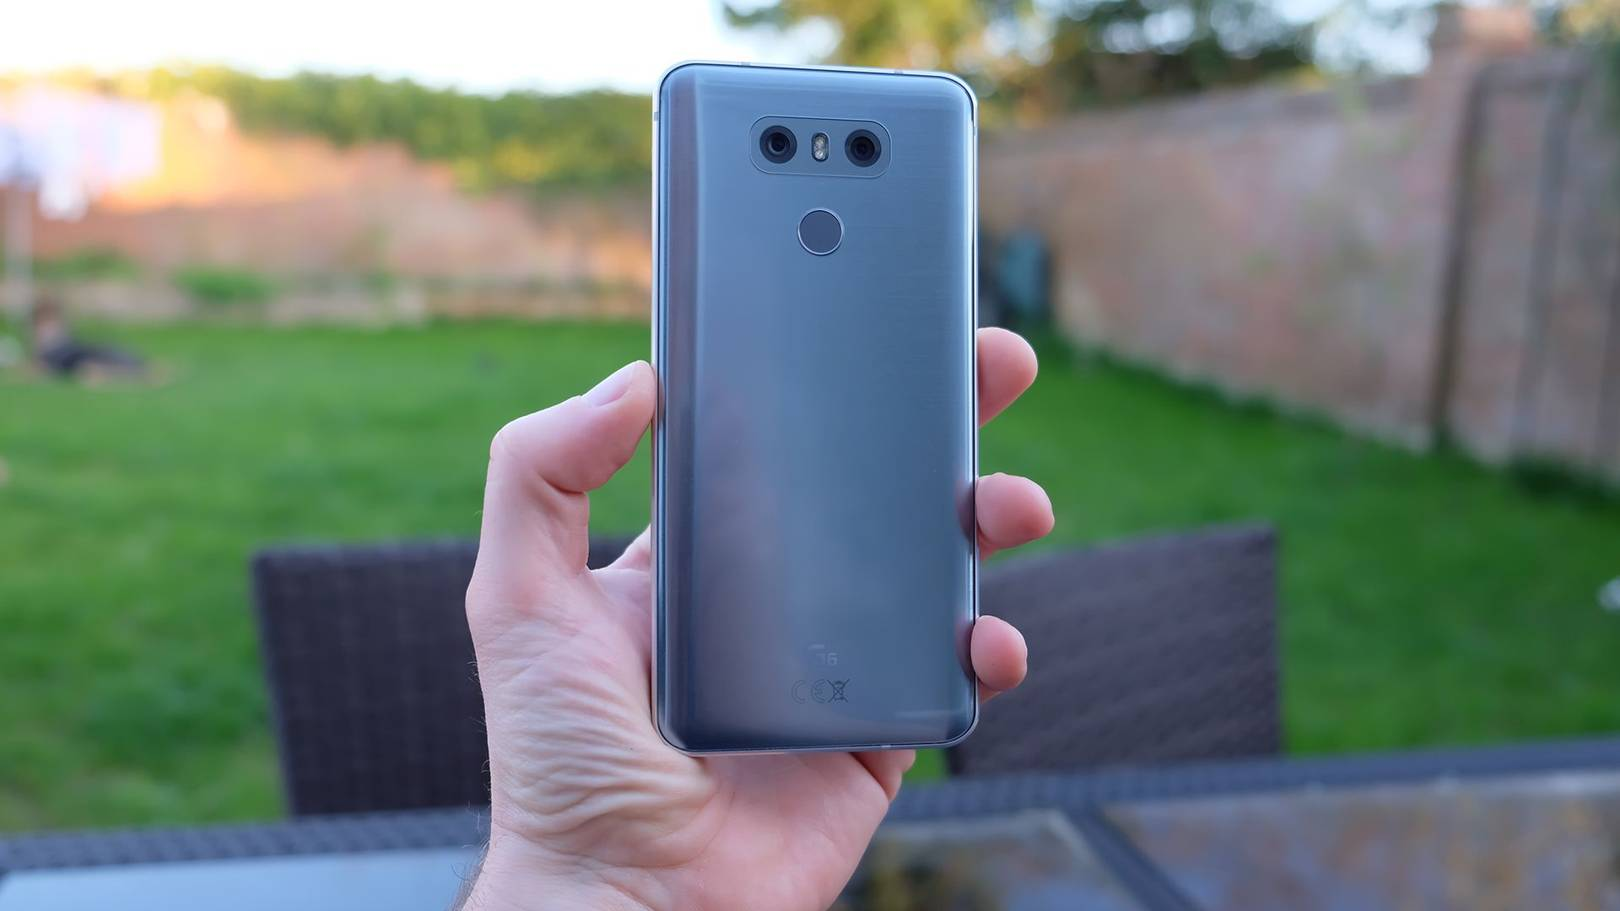 LG G6 review: great battery life pits it against the Galaxy S8